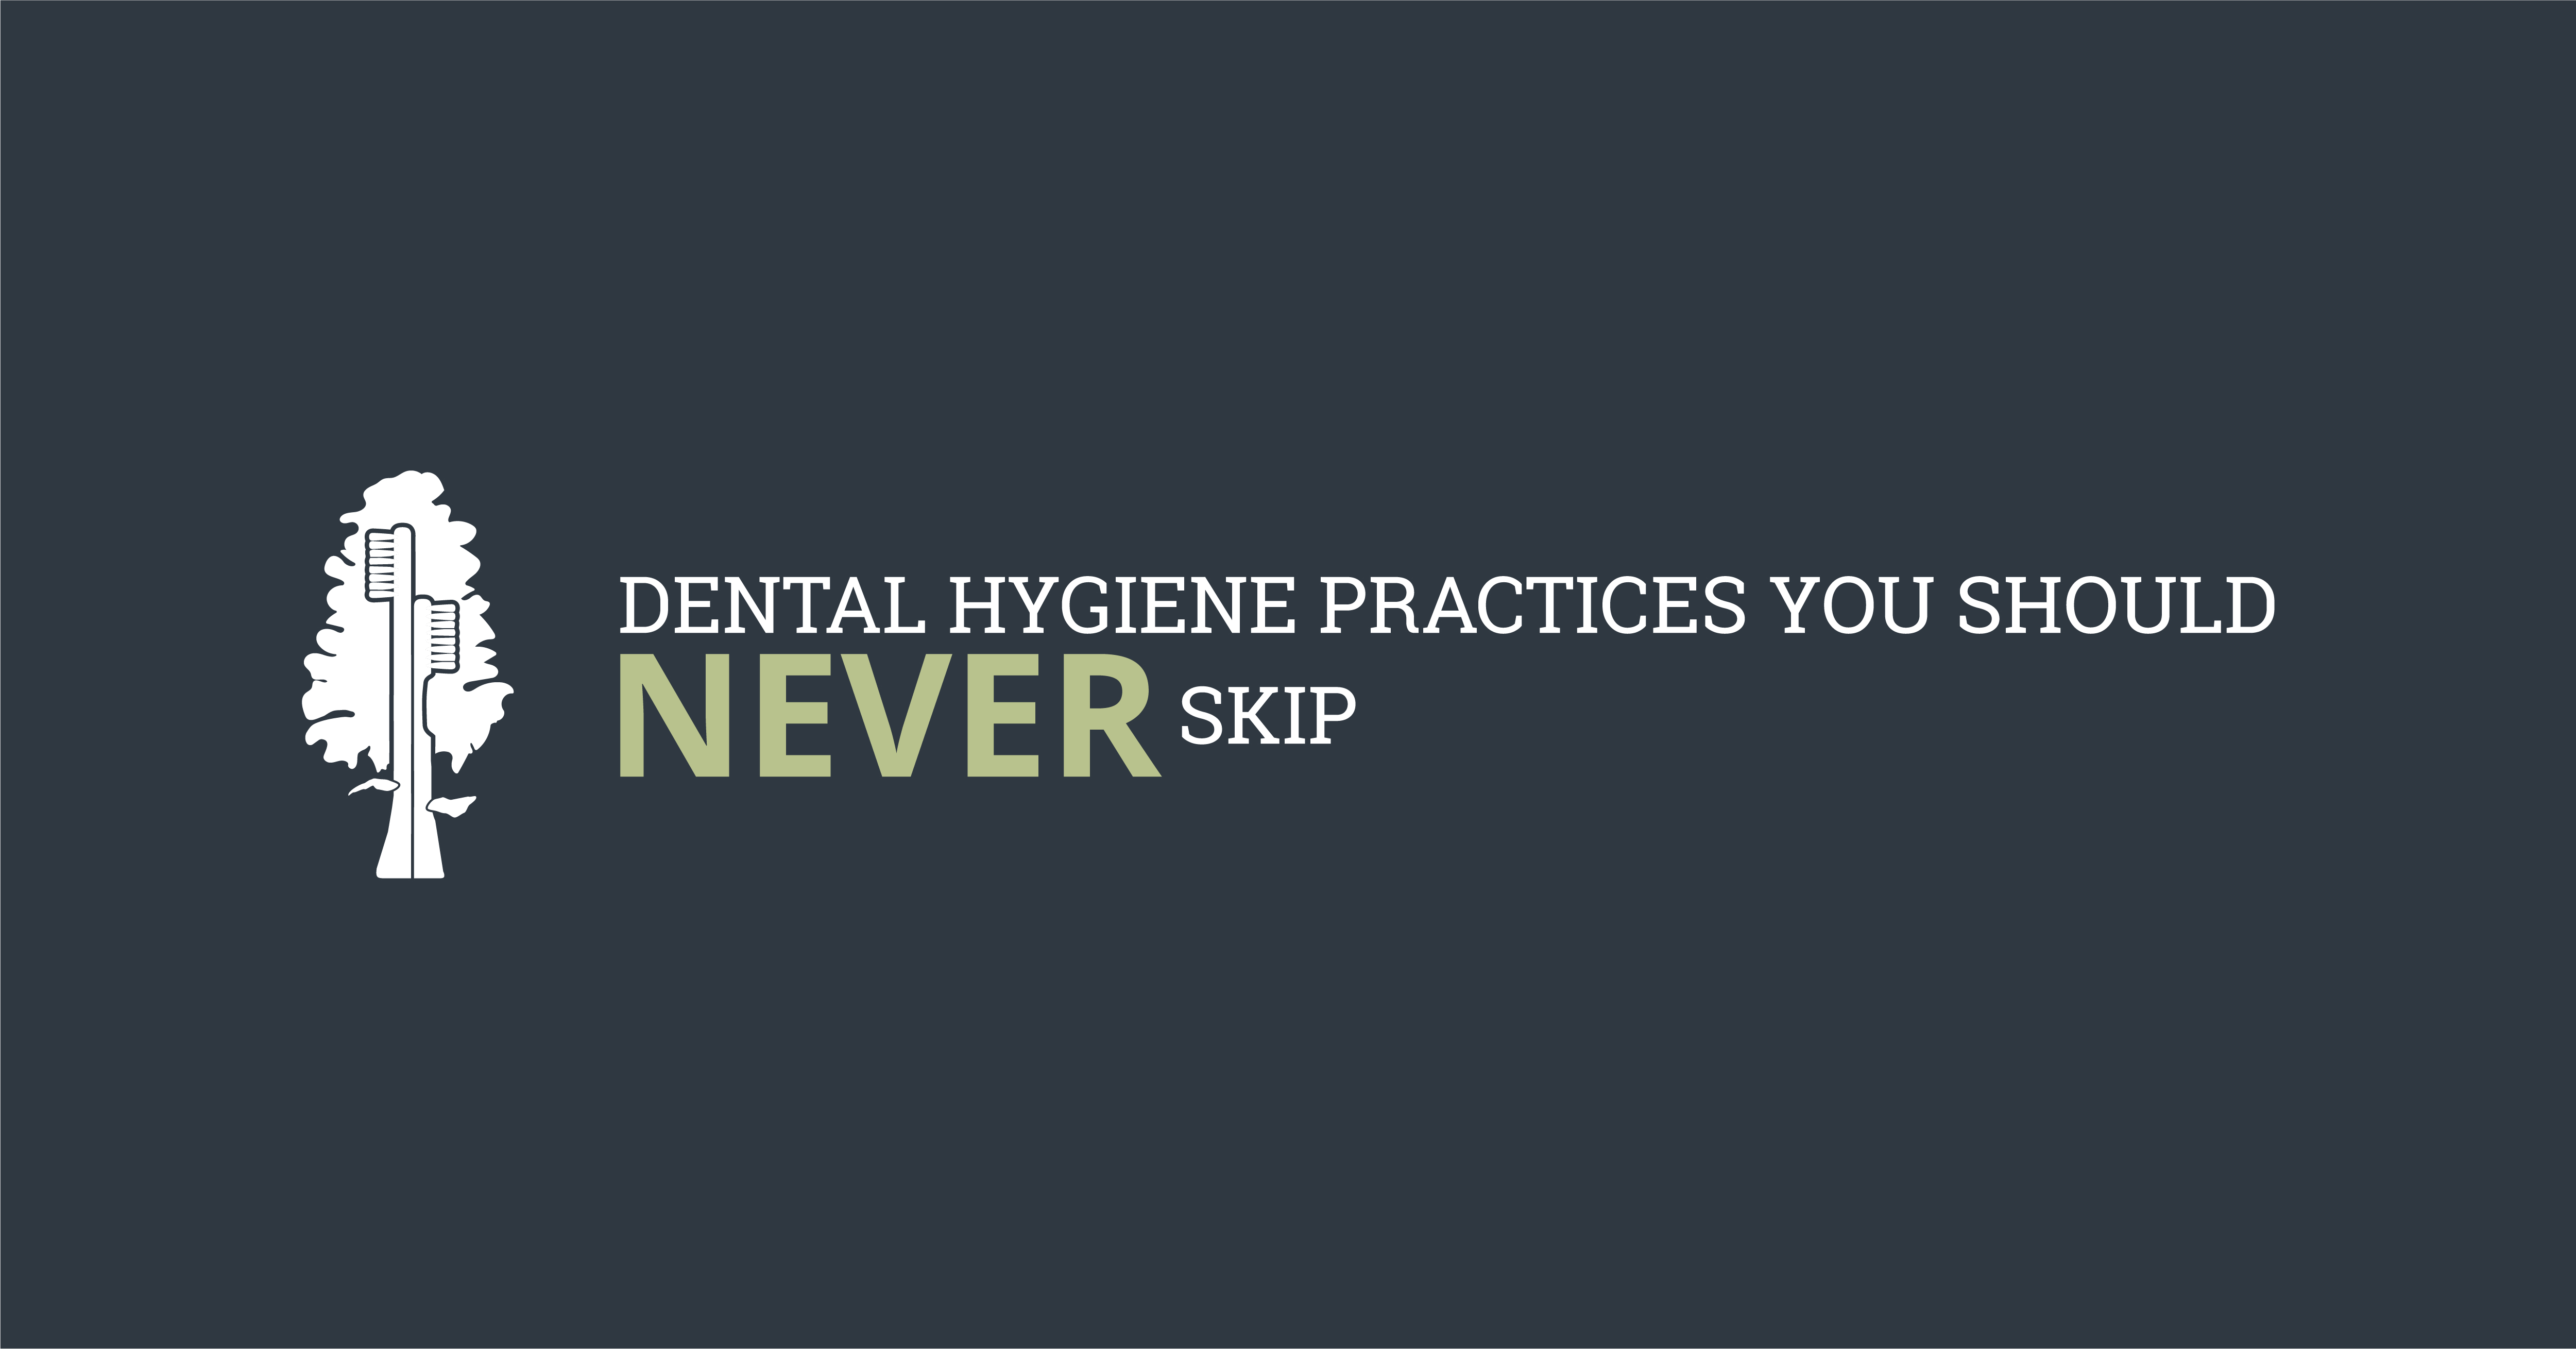 Dental Hygiene Practices You Should Never Skip